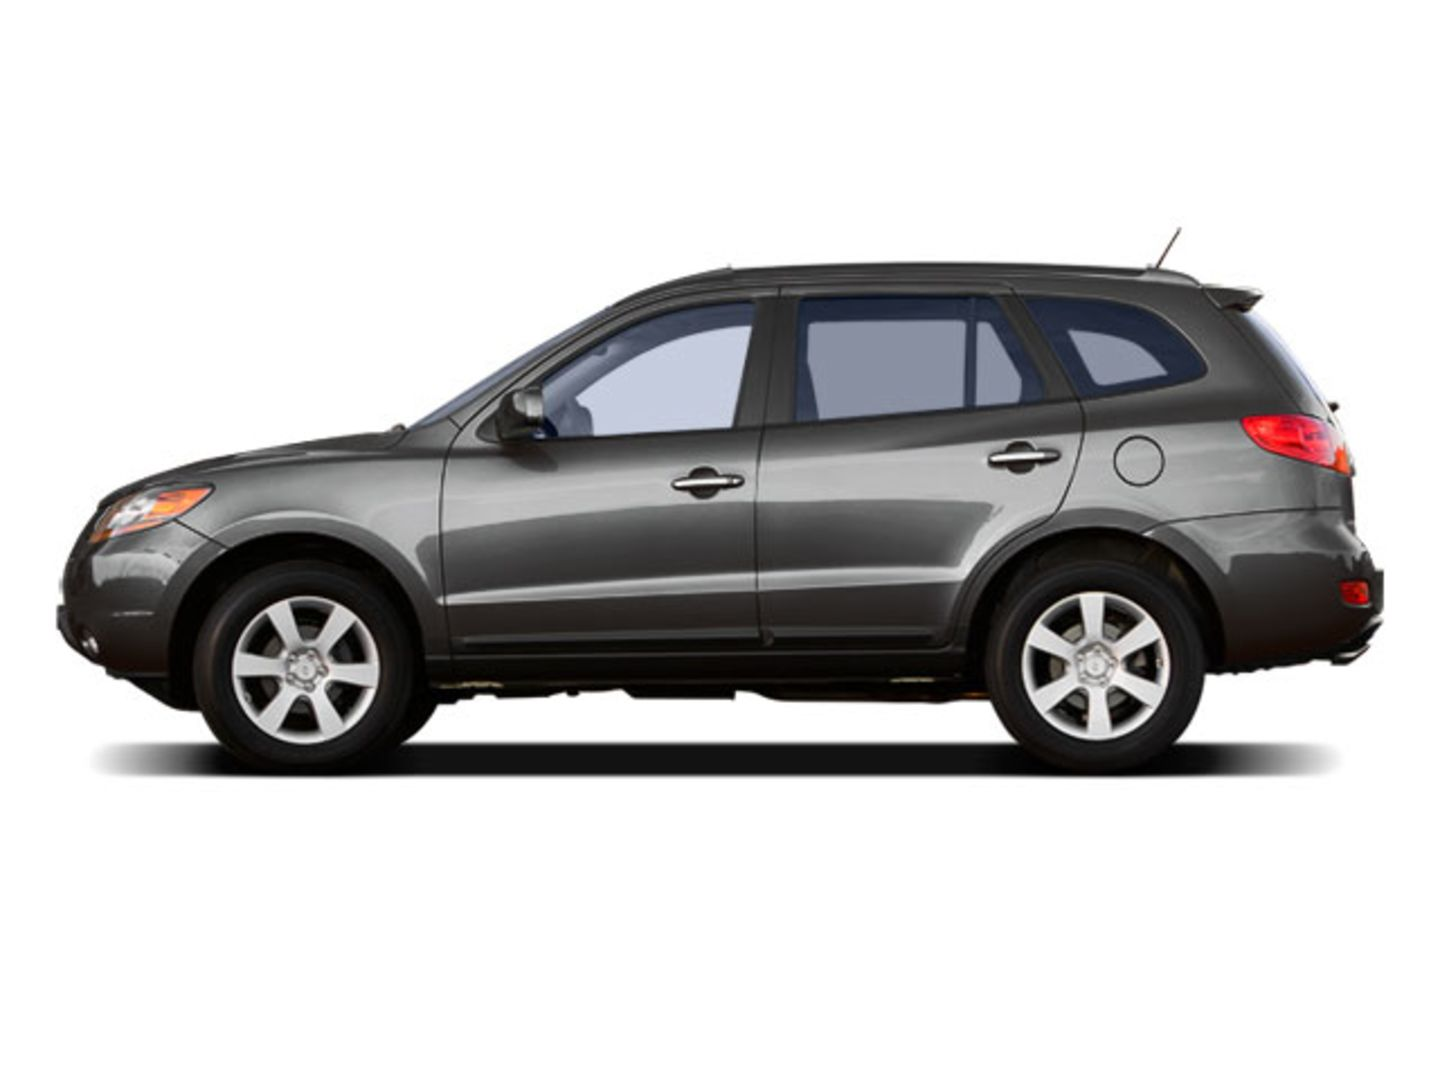 2009 Hyundai Santa Fe GL for sale in Edmonton, Alberta